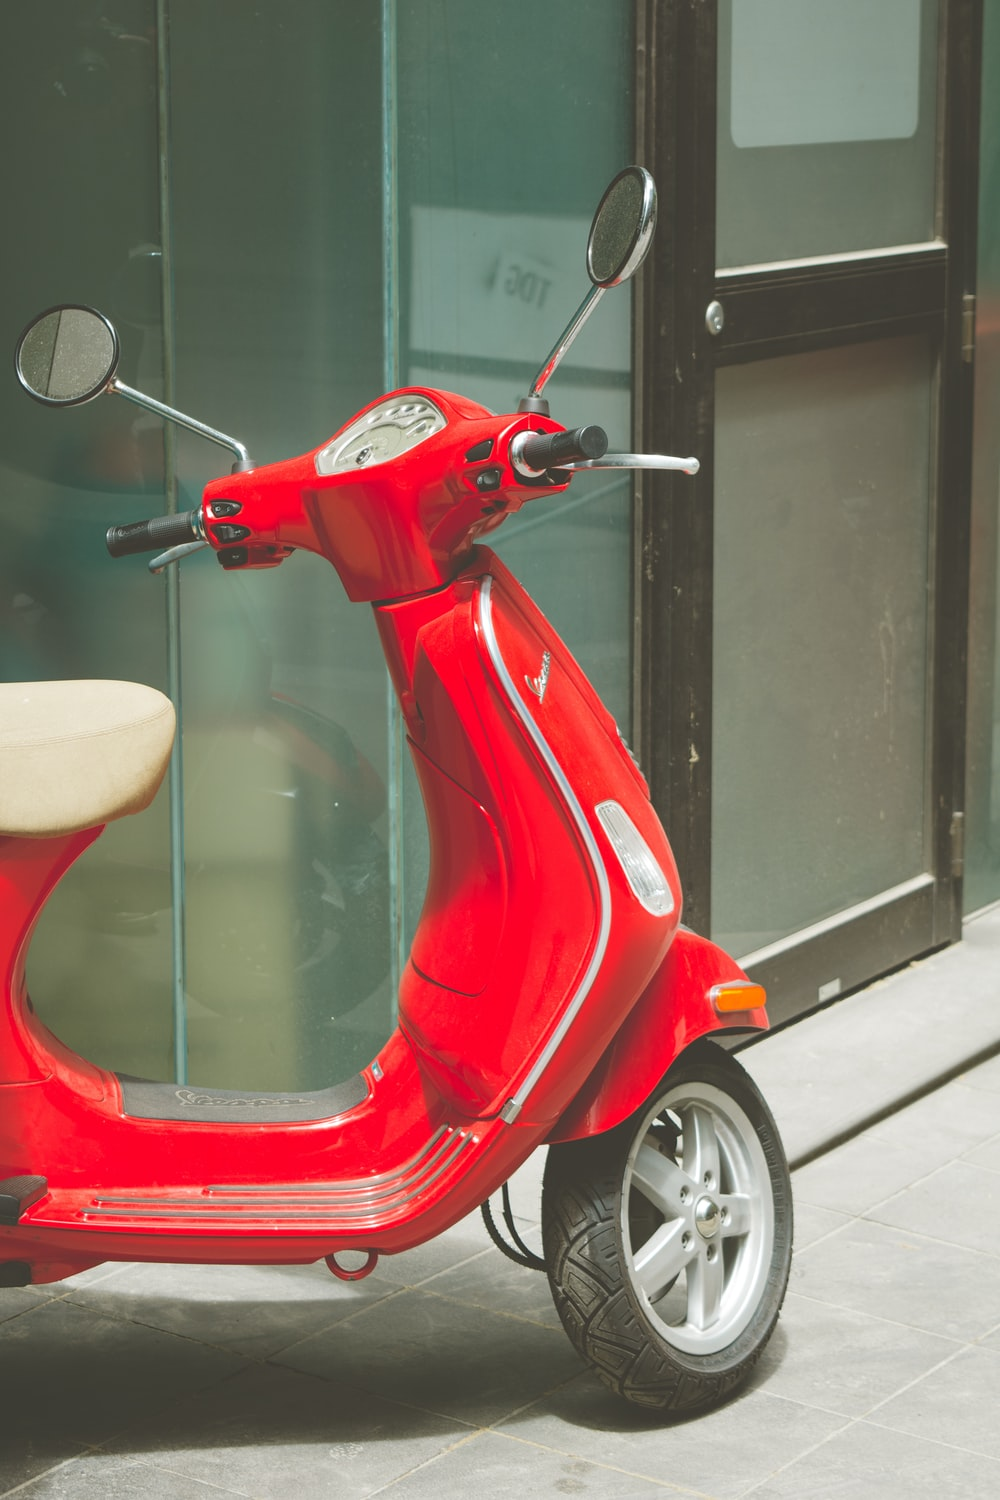 red and white motor scooter beside glass wall